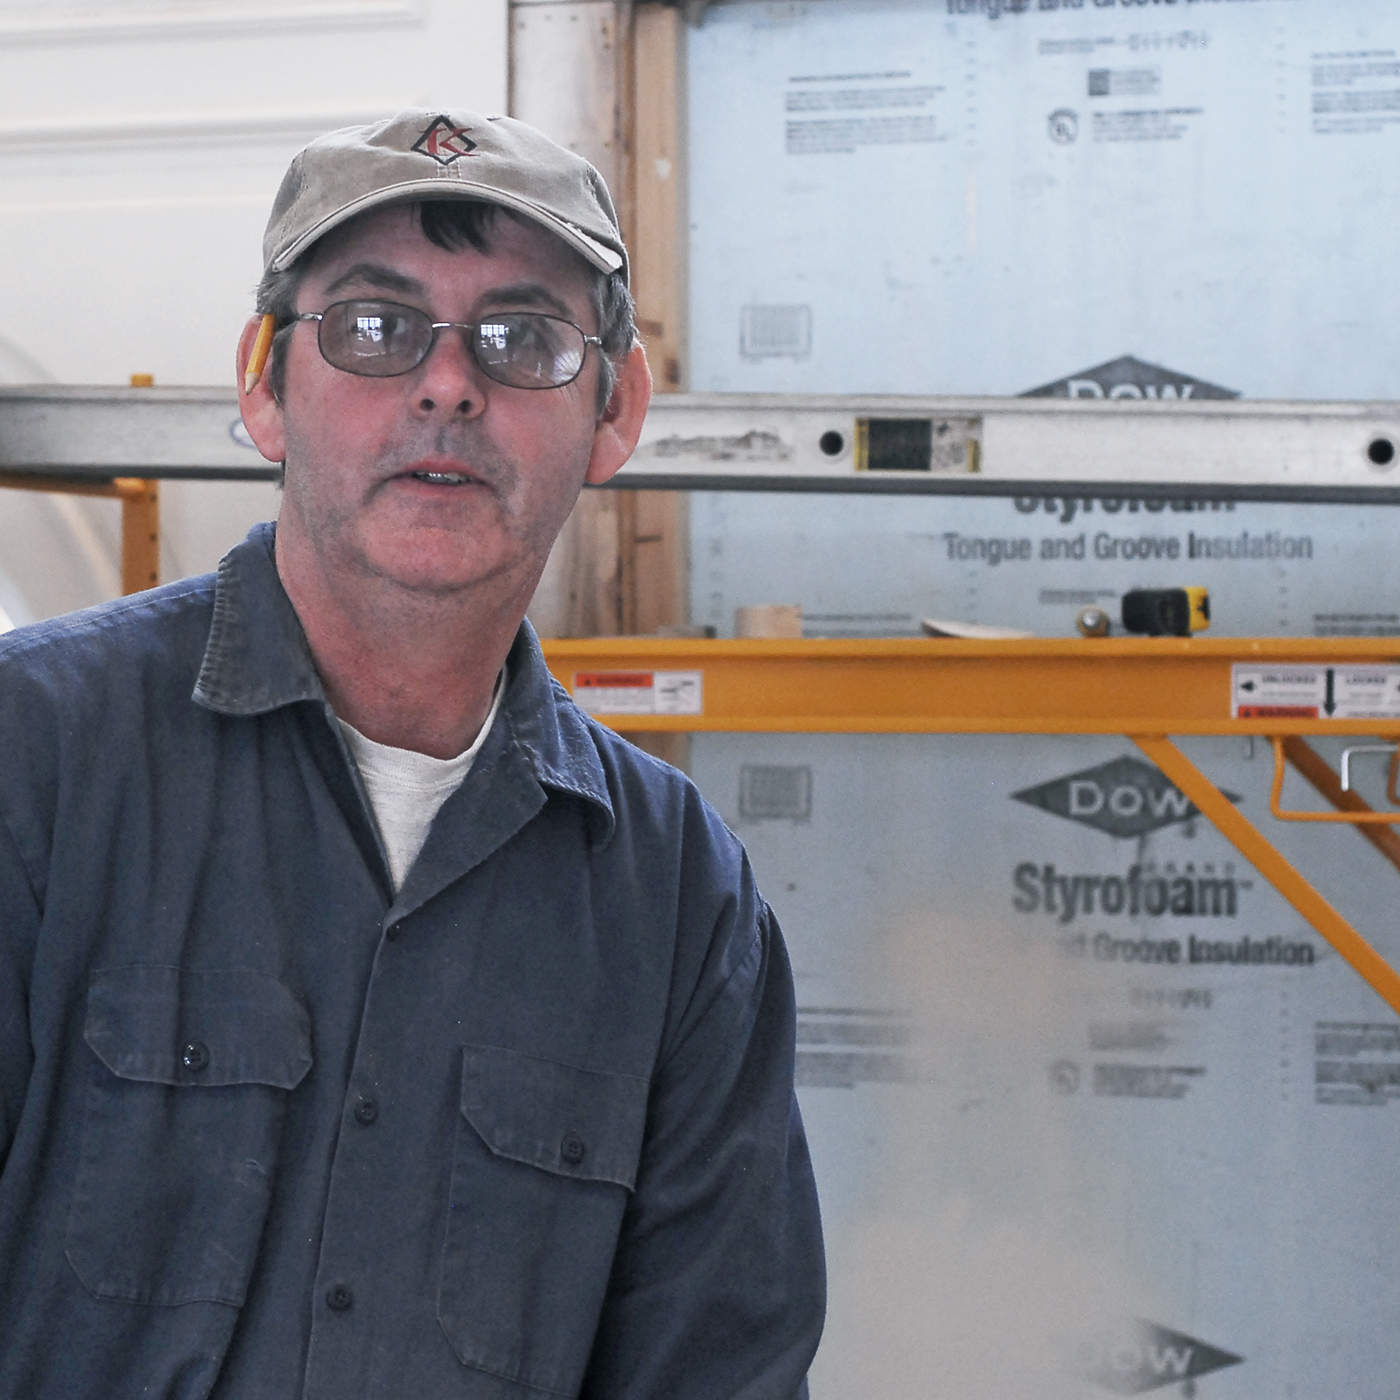 Ronny Hyson is a carpenter for Knickerbocker Group